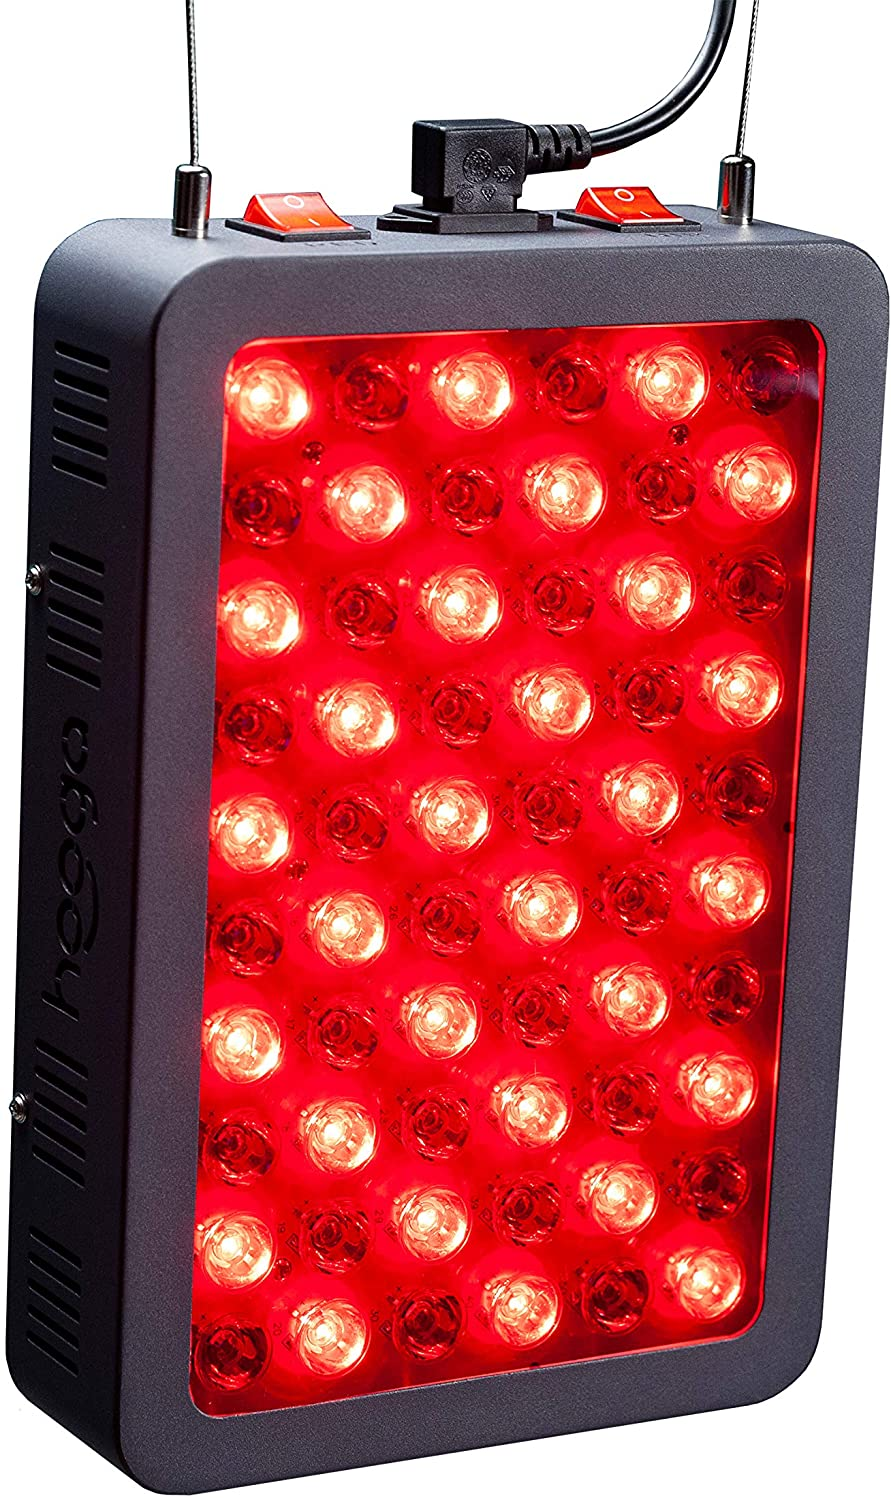 Hooga Red Light Therapy Device